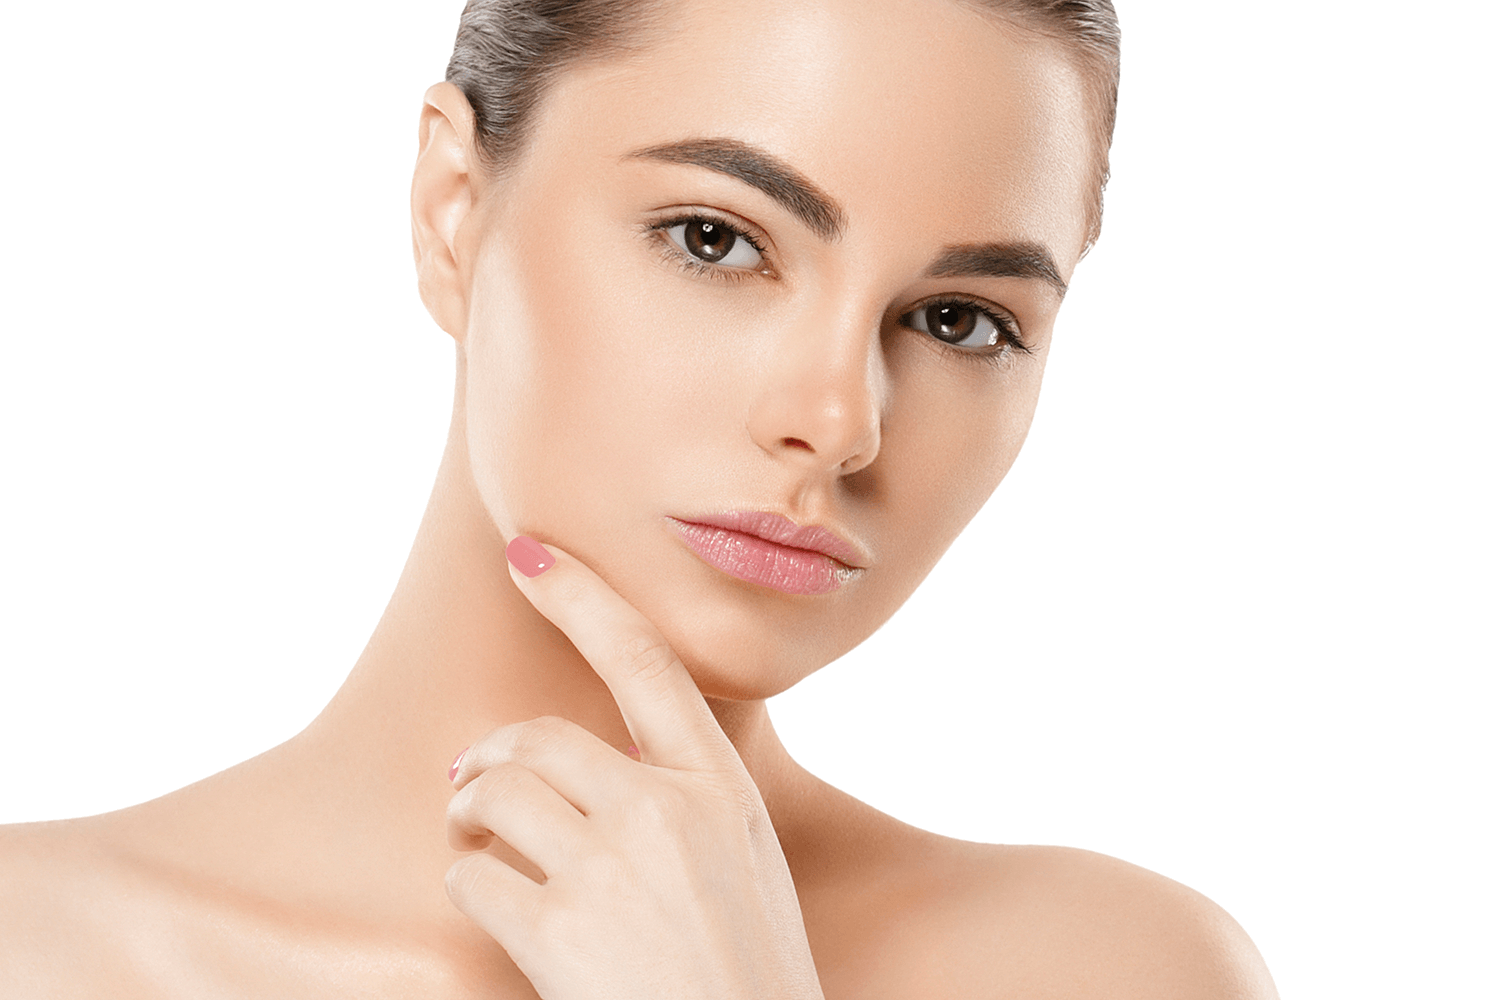 Skin Whitening & Brightening For A Beautiful Appearance